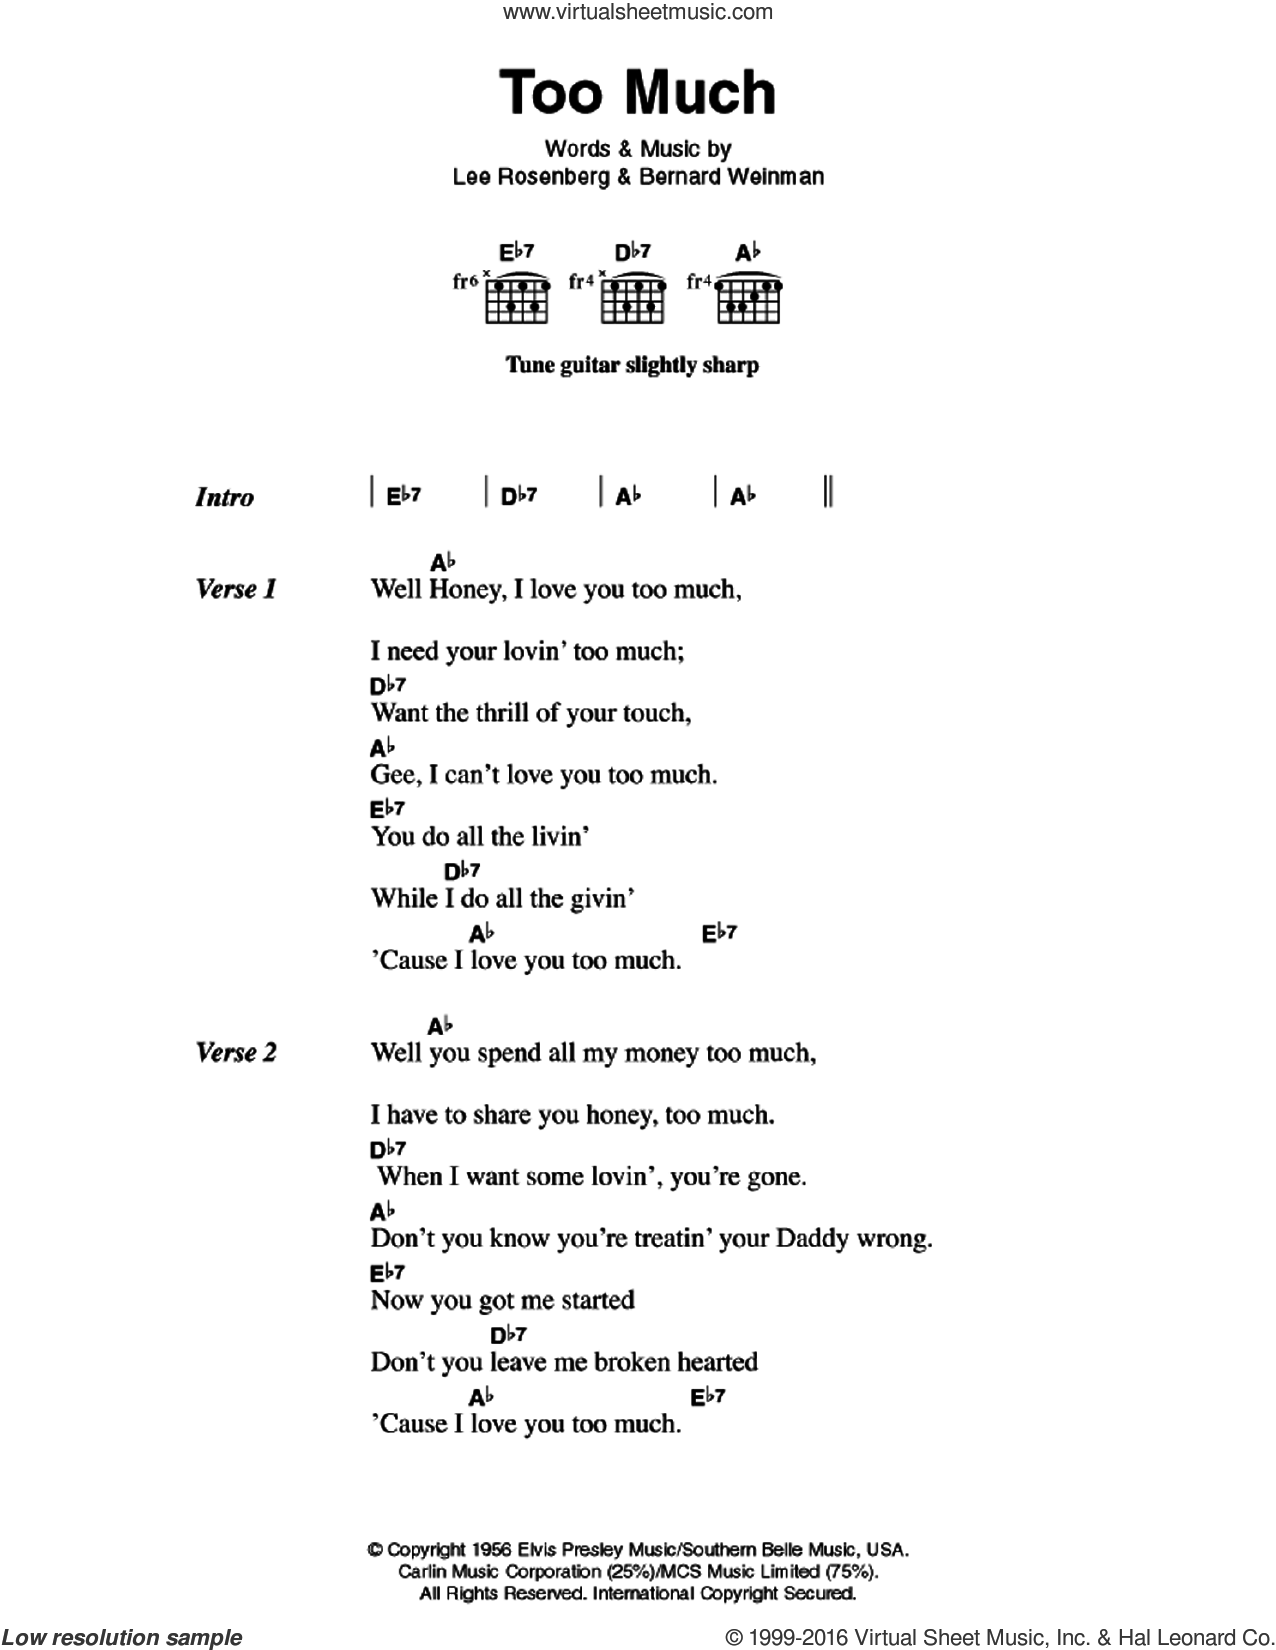 Too Much sheet music for guitar (chords) by Elvis Presley, Bernard Weinman and Lee Rosenberg, intermediate skill level